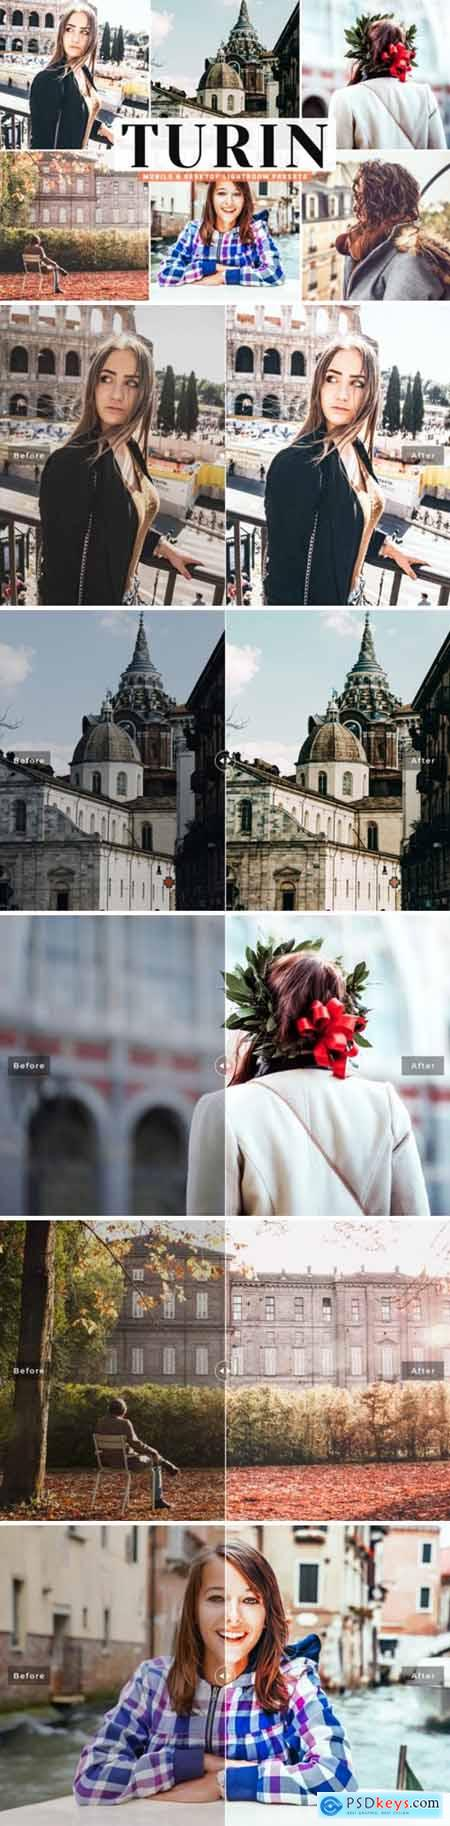 Turin Mobile & Desktop Lightroom Presets 4160165